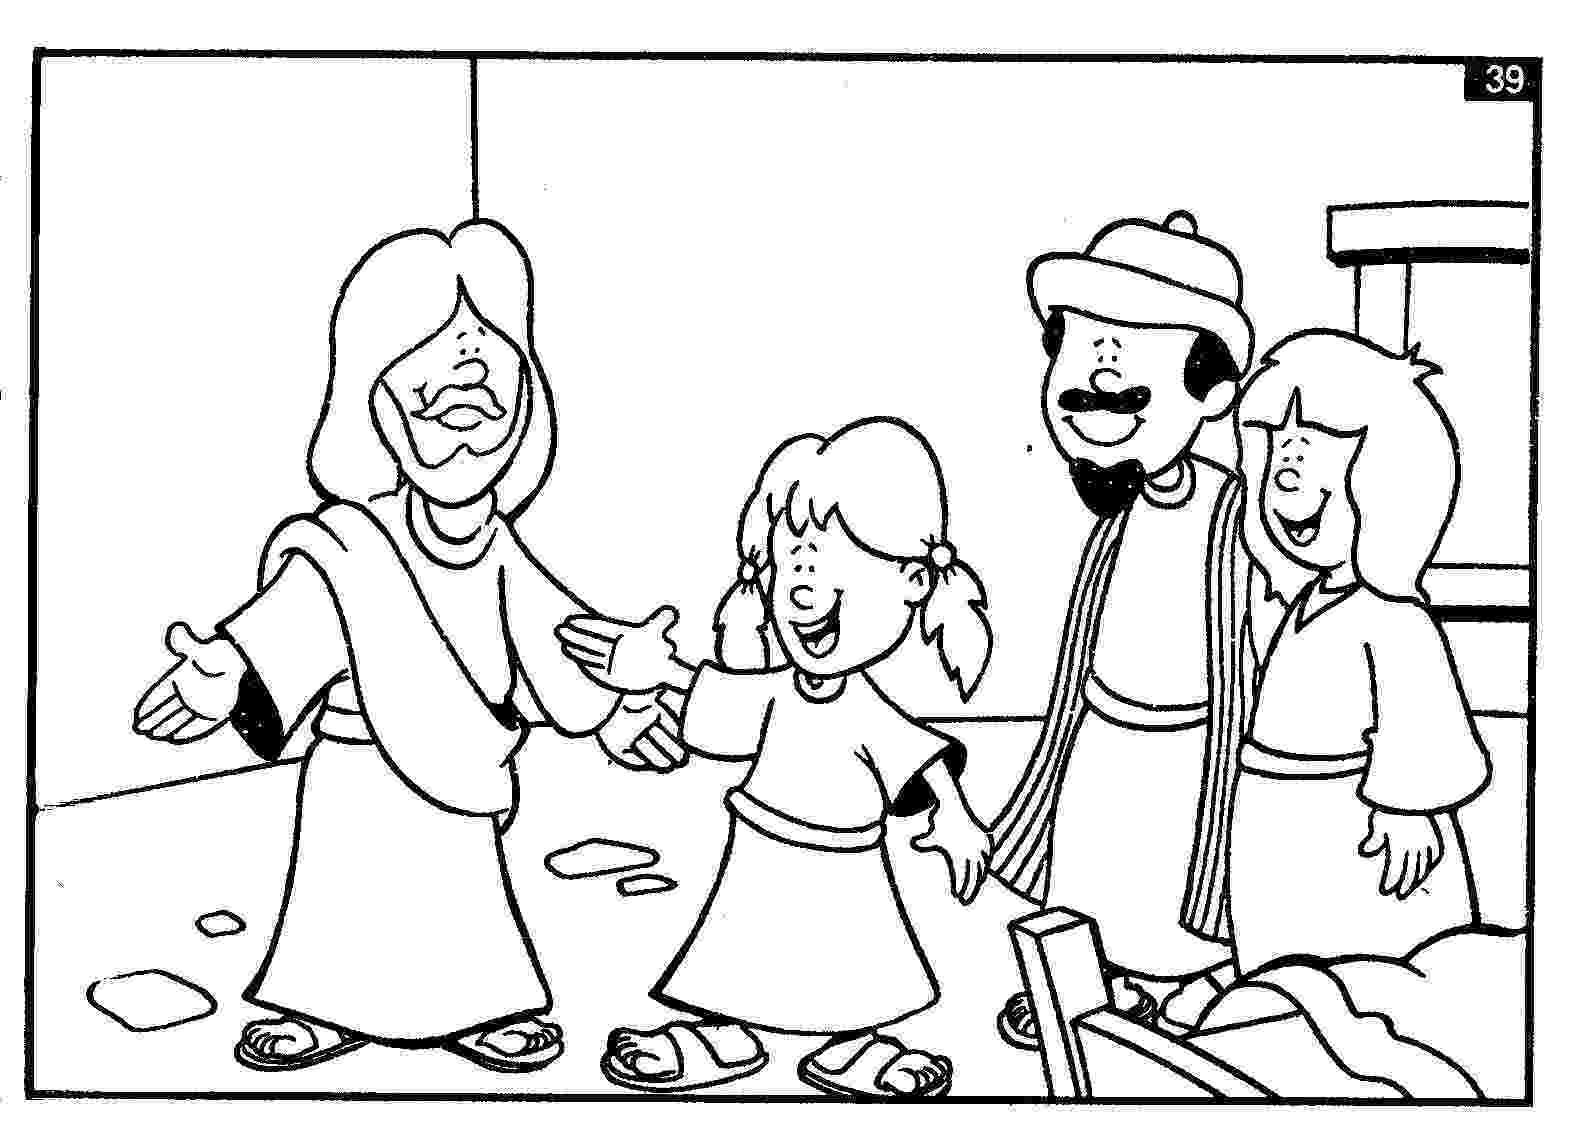 jairus daughter colouring sheets sick girl who healed by miracles of jesus coloring page colouring jairus daughter sheets